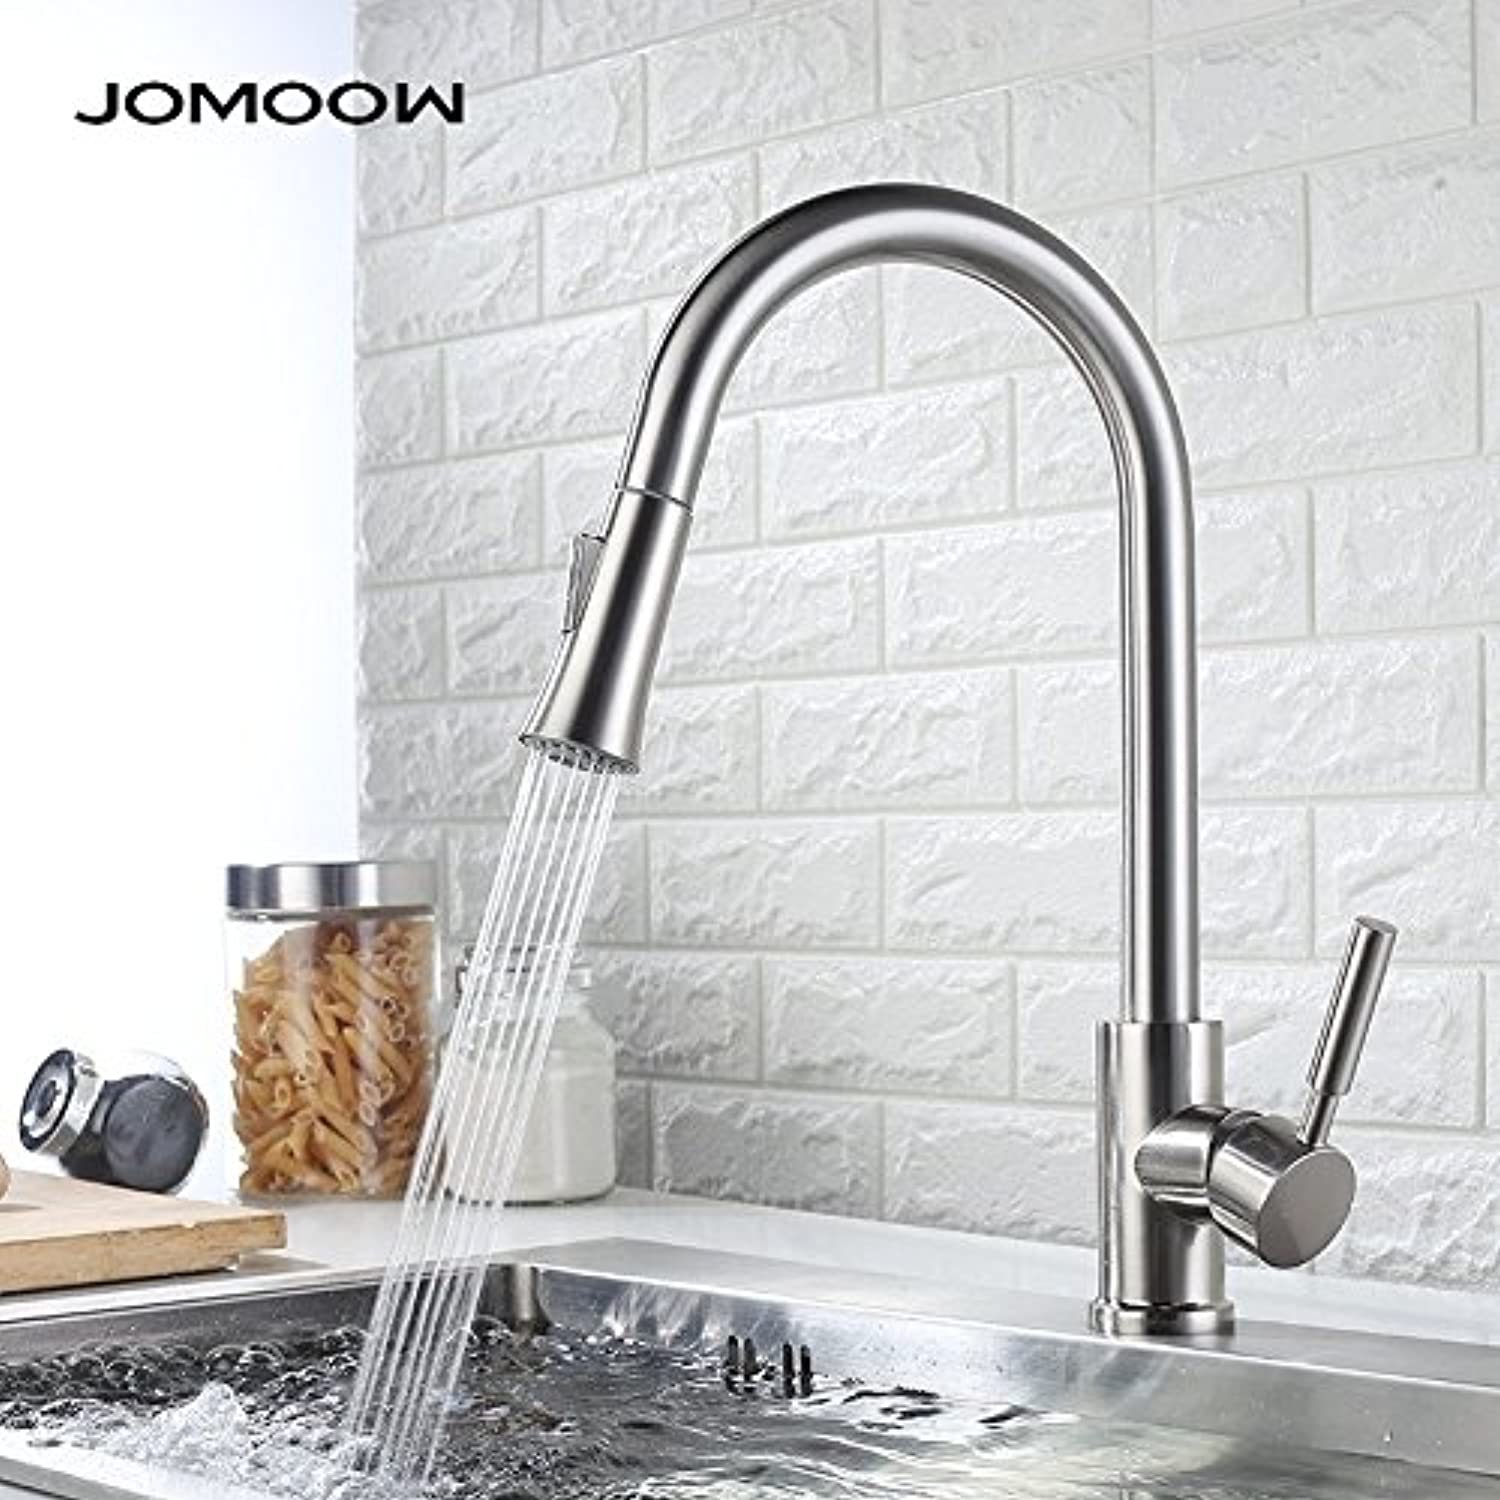 Decorry Cold Drawing The Whole Kitchen Faucet Mixer 304 Stainless Steel Vegetables Basin Faucet Copper redatable Ceramic Valve Core, F-BIS Paragraph Drawing Water